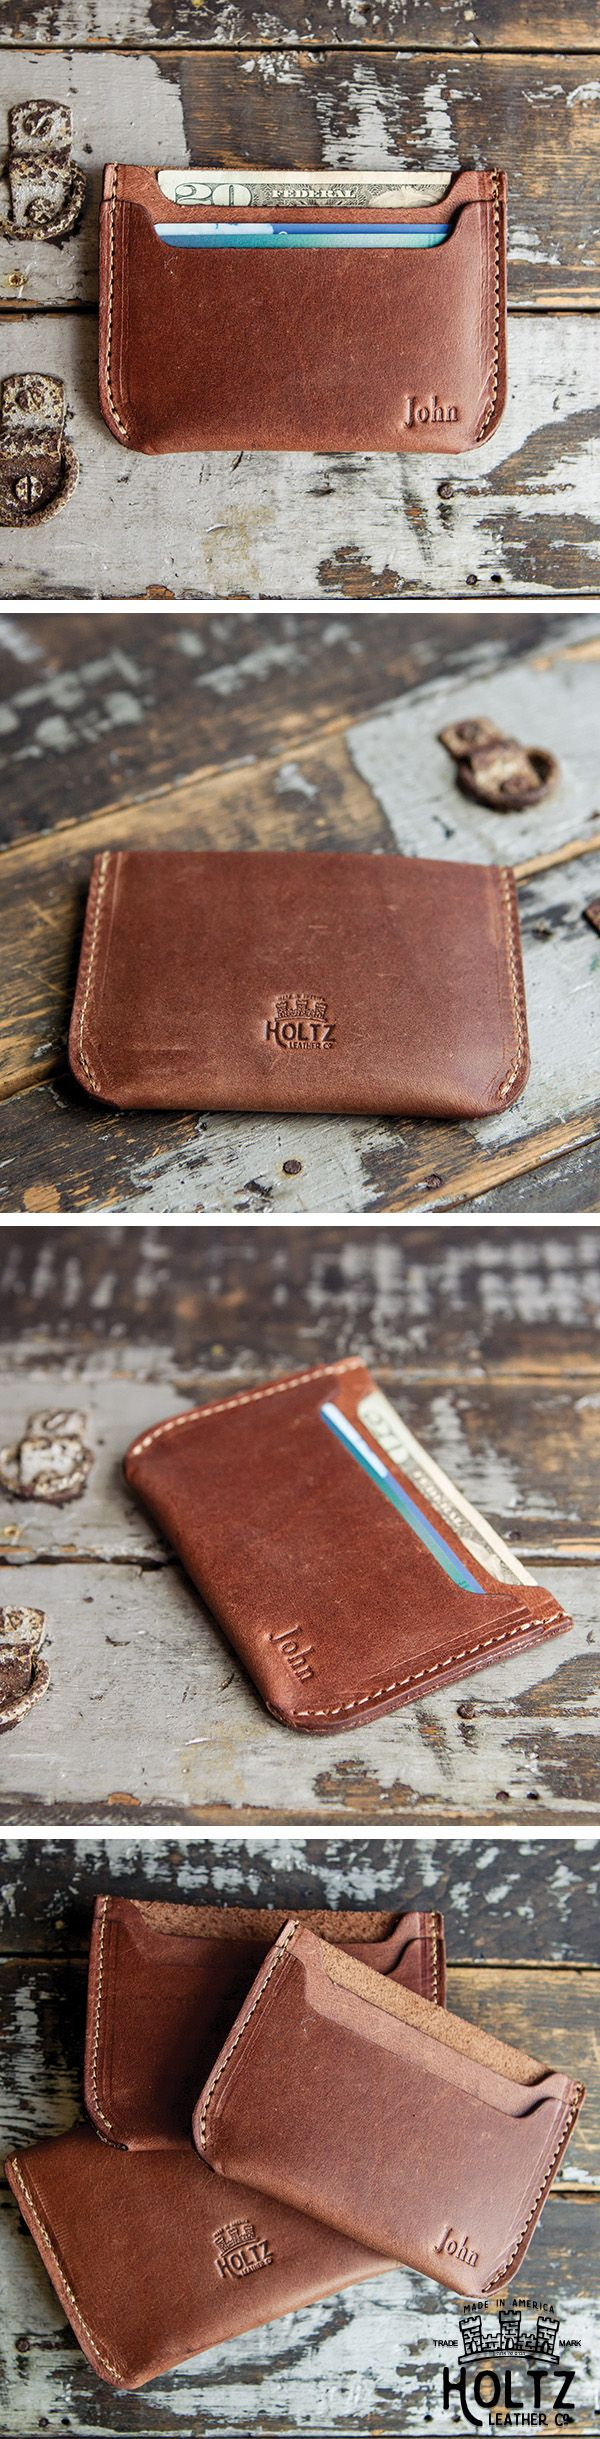 The Bradford Front Pocket Double Sleeve Fine Leather Wallet is handmade right here in our shop with the finest of Full Grain American leathers. We hand pick our leather hides from a local tannery ~ for a rustic look and feel. This is a gift that will be used and loved for a lifetime! Perfect for the executive, professional, father, or dear friend in your life.